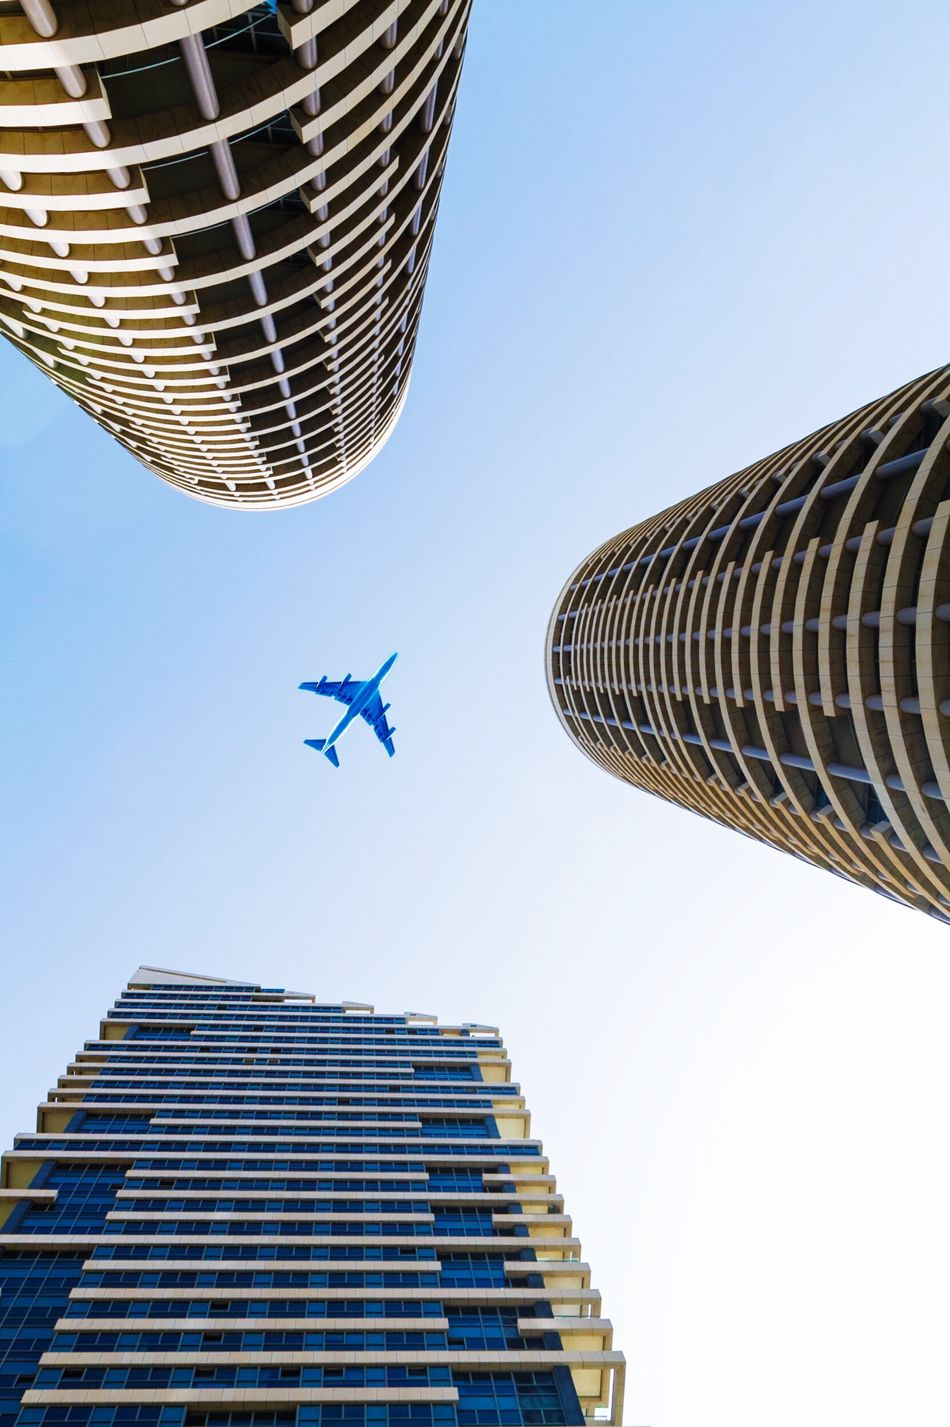 Up about Low Angle View Architecture Built Structure Airplane Skyscraper Building Exterior Flying Day Clear Sky AirPlane ✈ Blue Outdoors No People Modern City Sky EyeEmNewHere